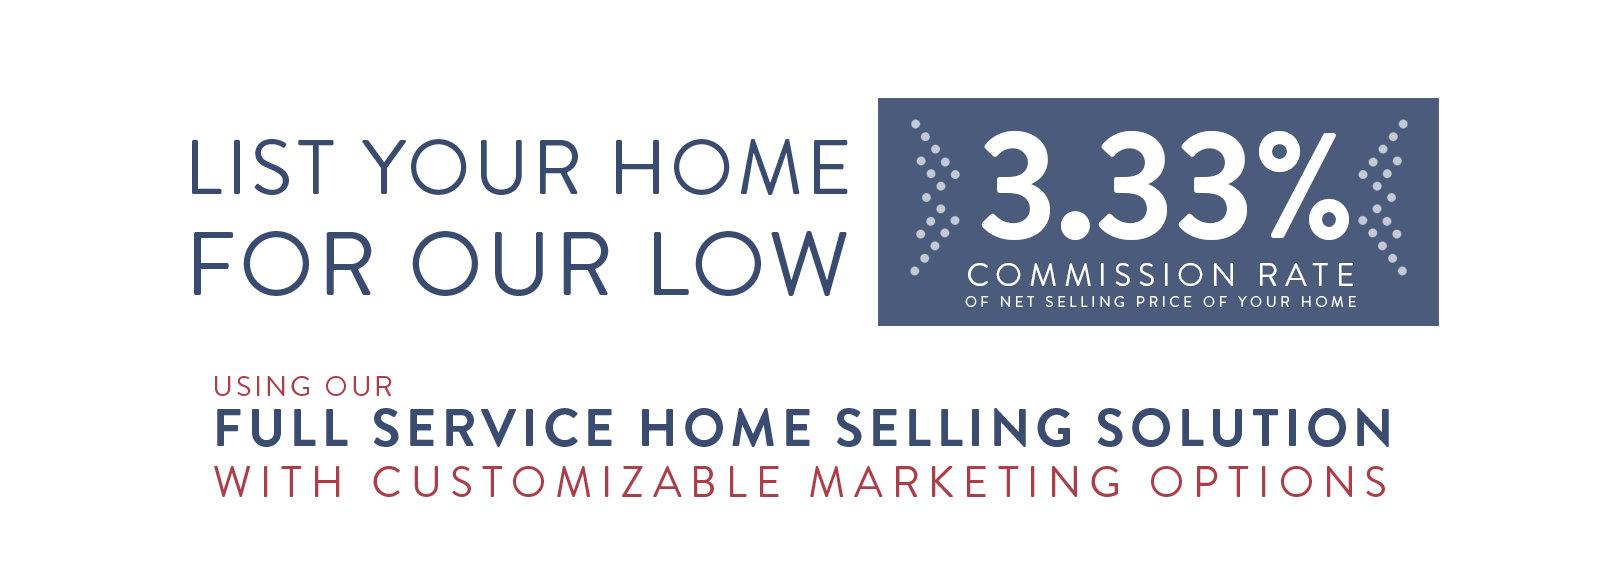 List your home for our low 3.33% commission rate of net selling price of your home using our full service home selling solution with customizable marketing options.